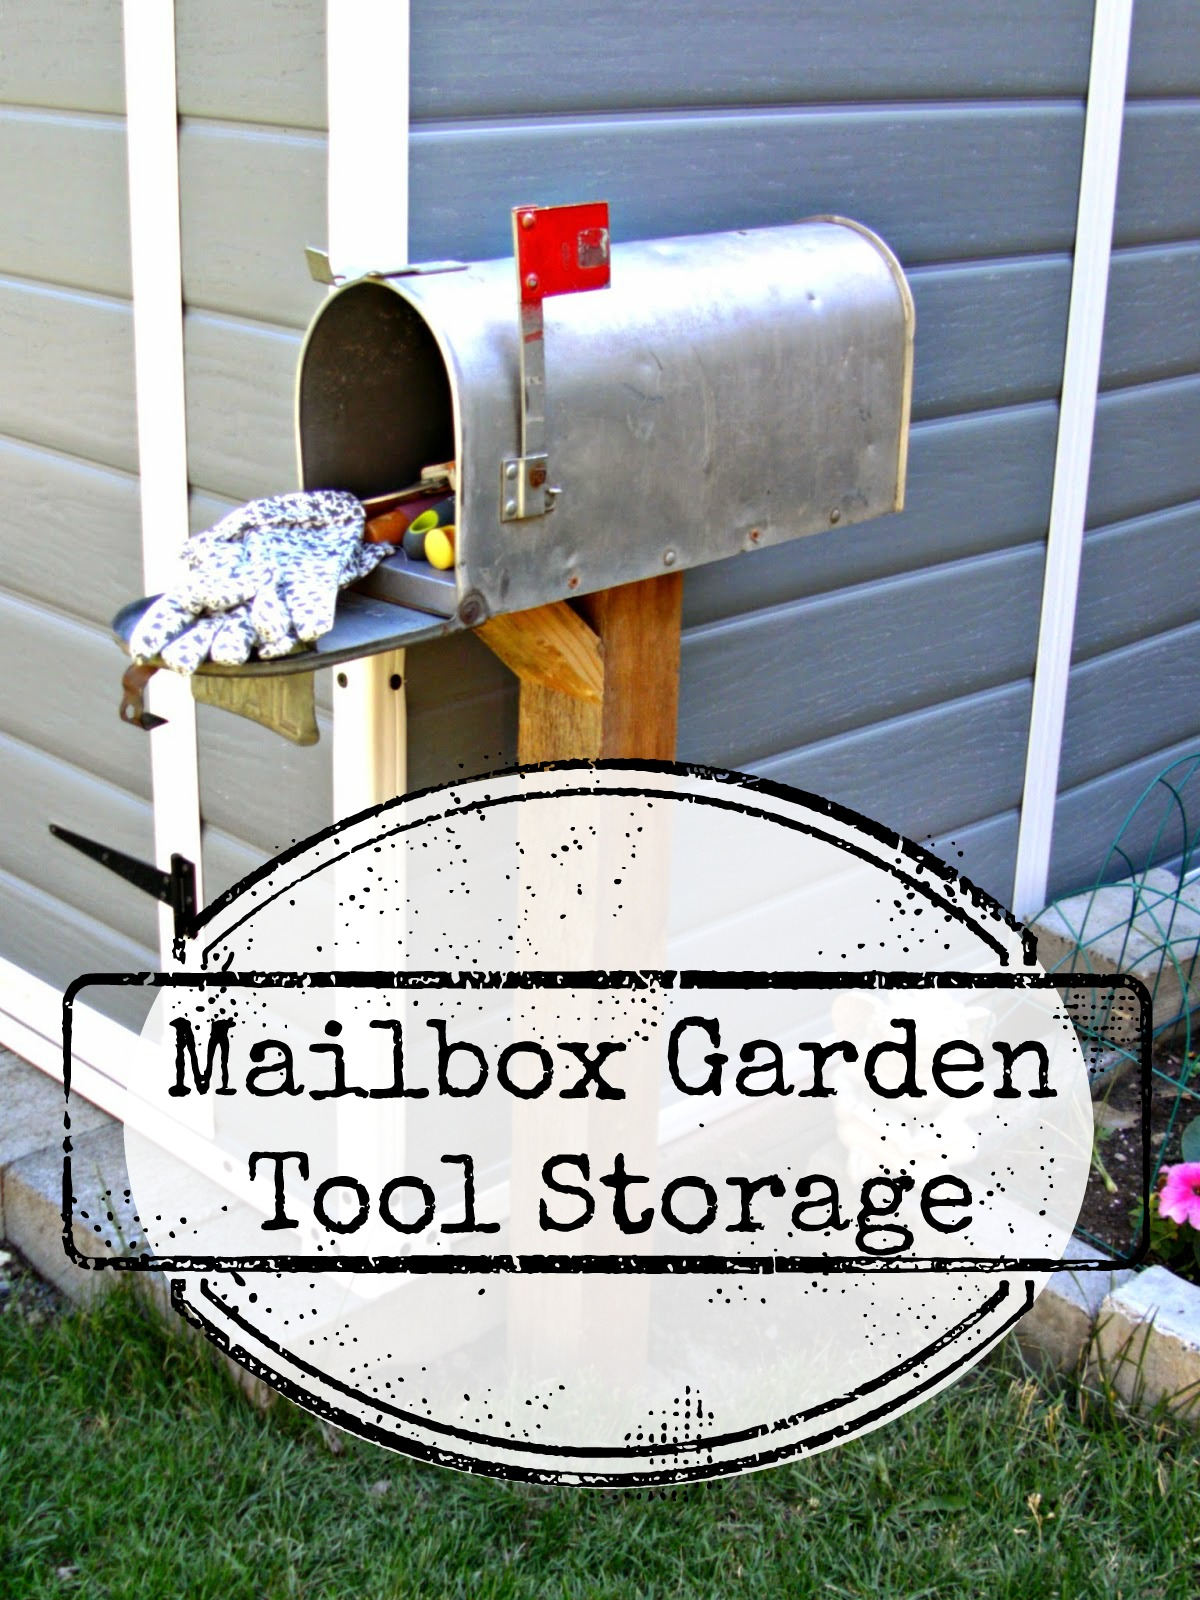 Mailbox garden tool storage weekend yard work series for The works garden tools